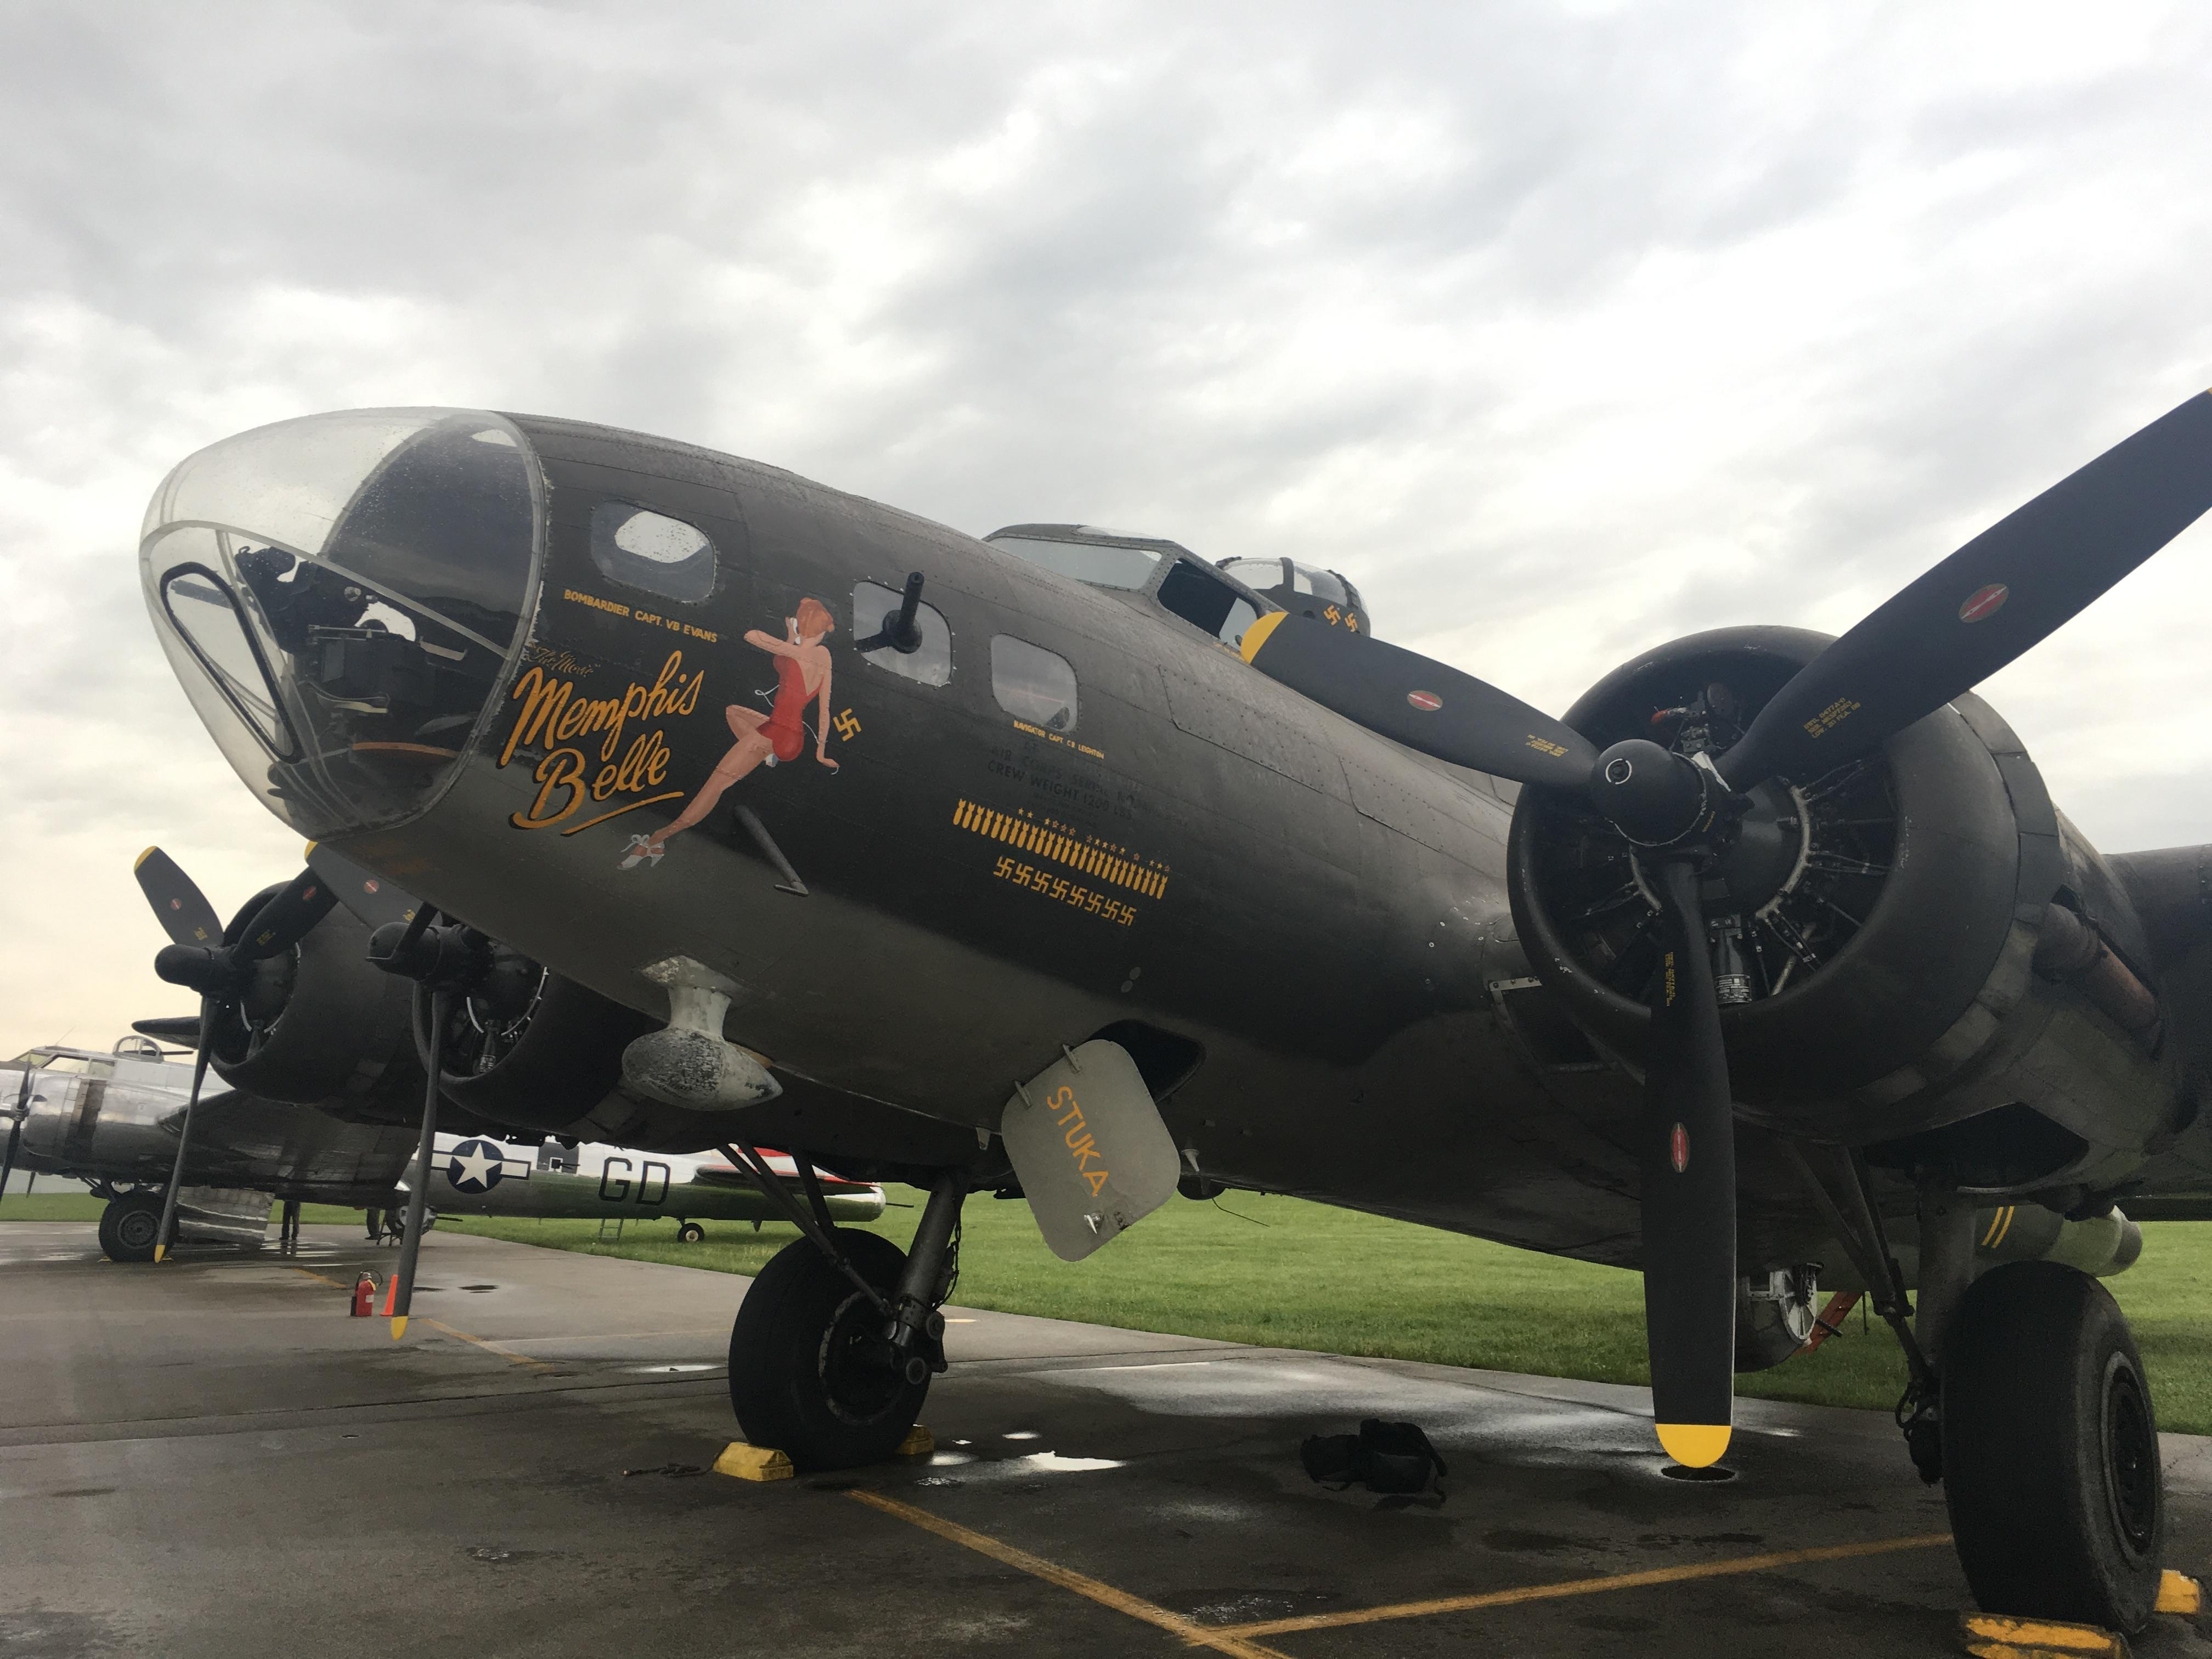 WWII era planes take off from Urbana's Grimes Field to fly over Museum of U.S. Air Force(WKEF/WRGT)